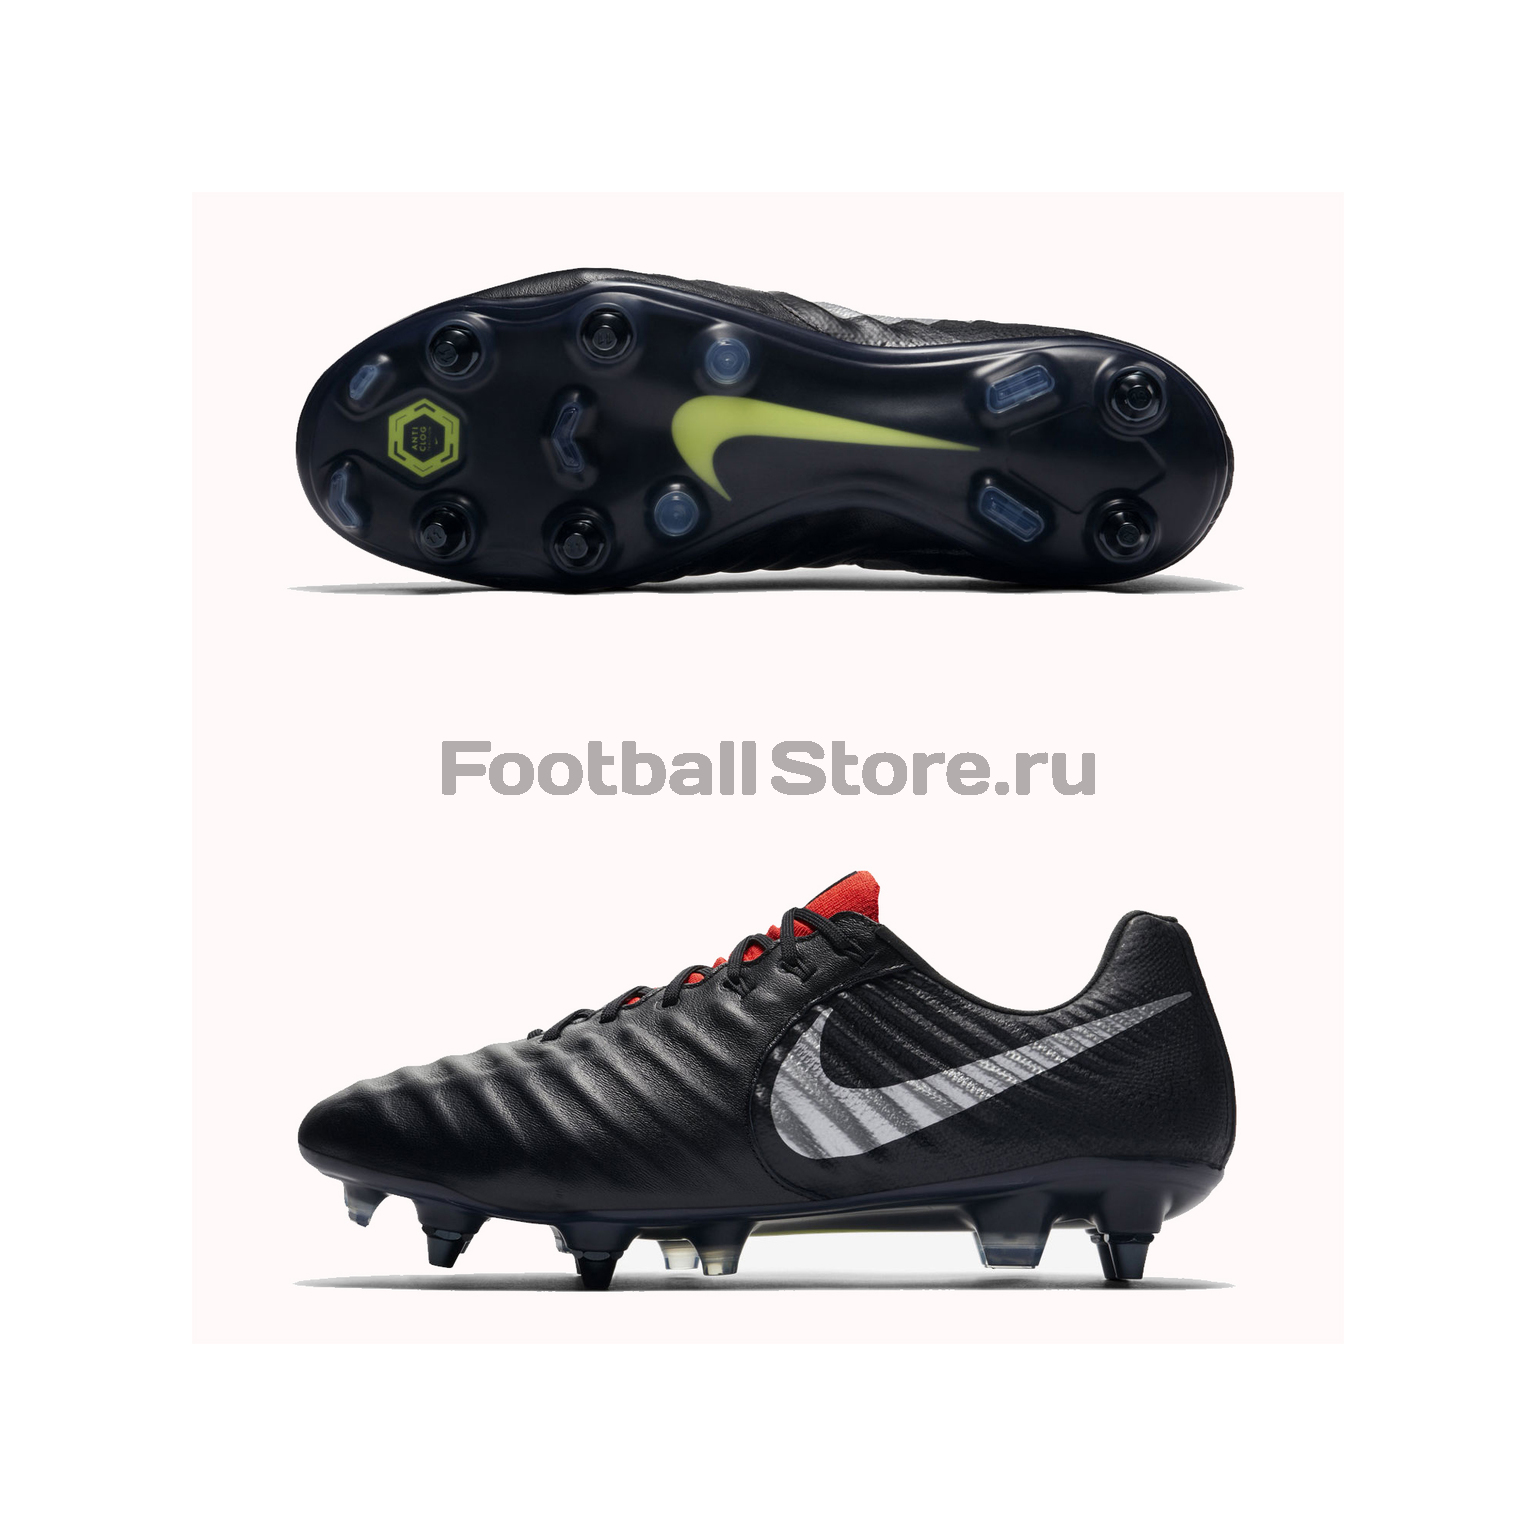 Бутсы Nike Legend 7 Elite SG-Pro AC AR4387-006 бутсы nike шиповки nike jr tiempox legend vi tf 819191 018